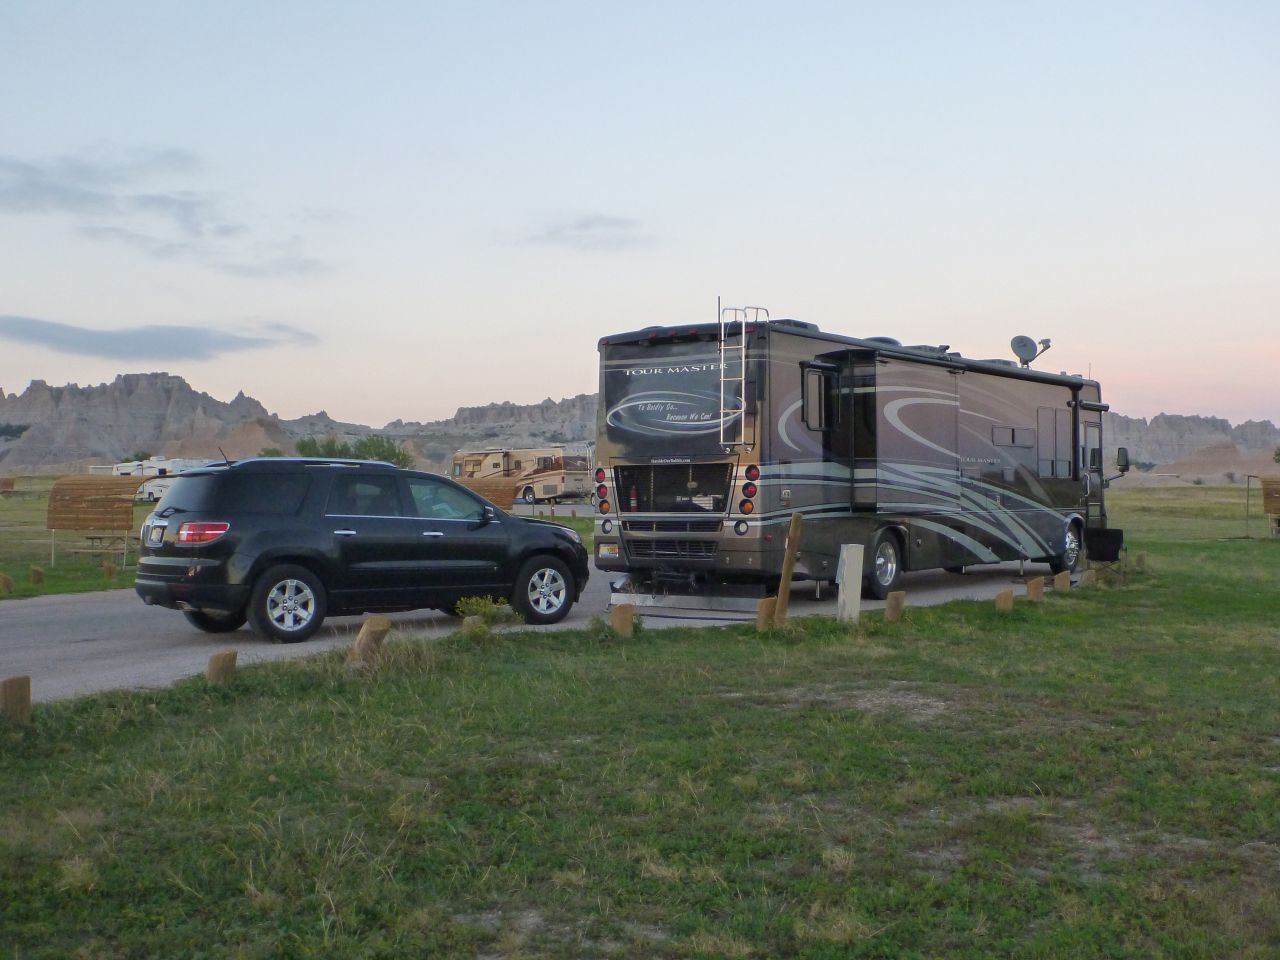 Our Site, Number 19, At The Campground Inside The Badlands